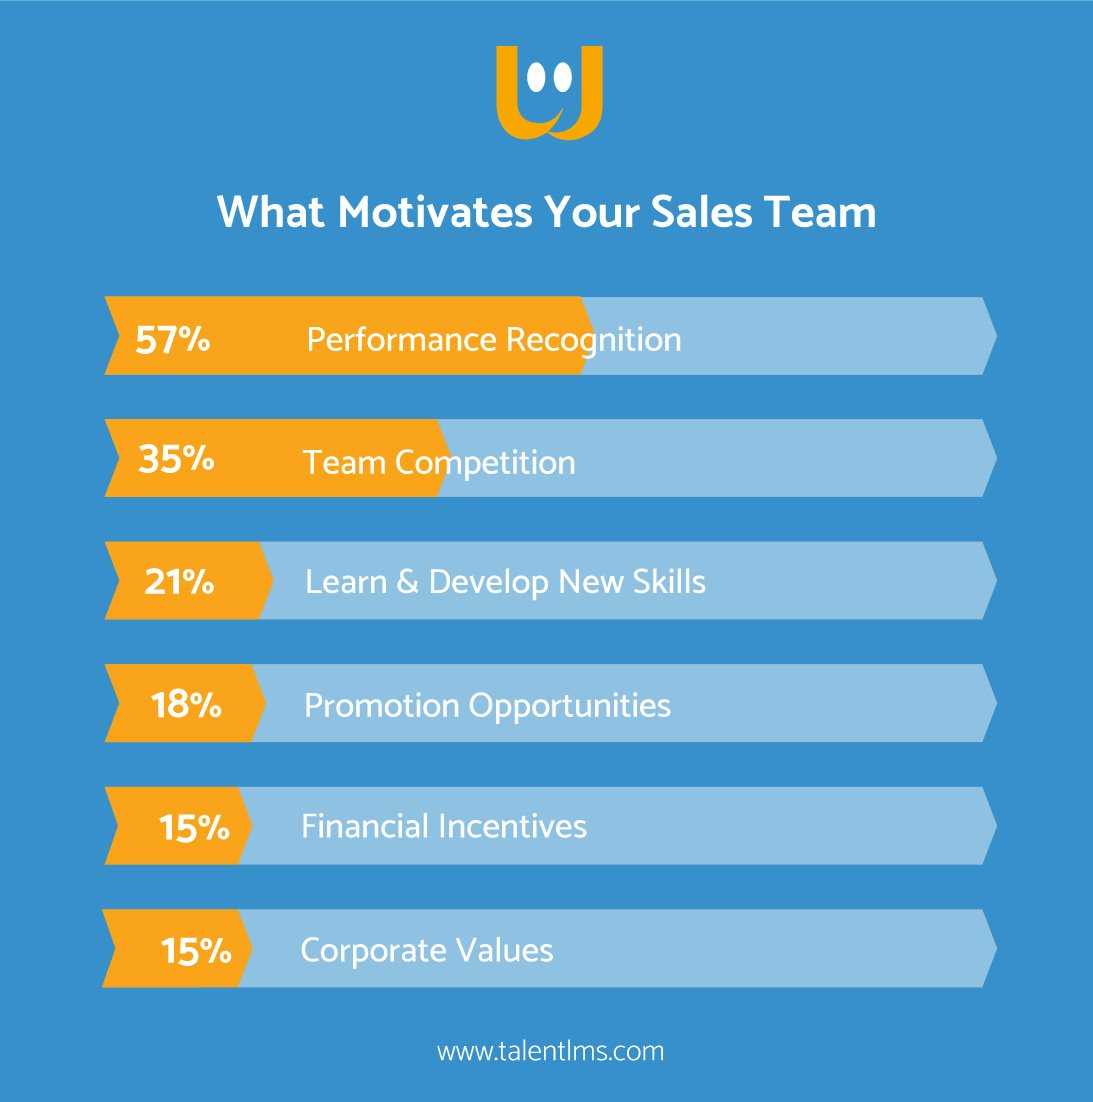 whappy motivates sales team